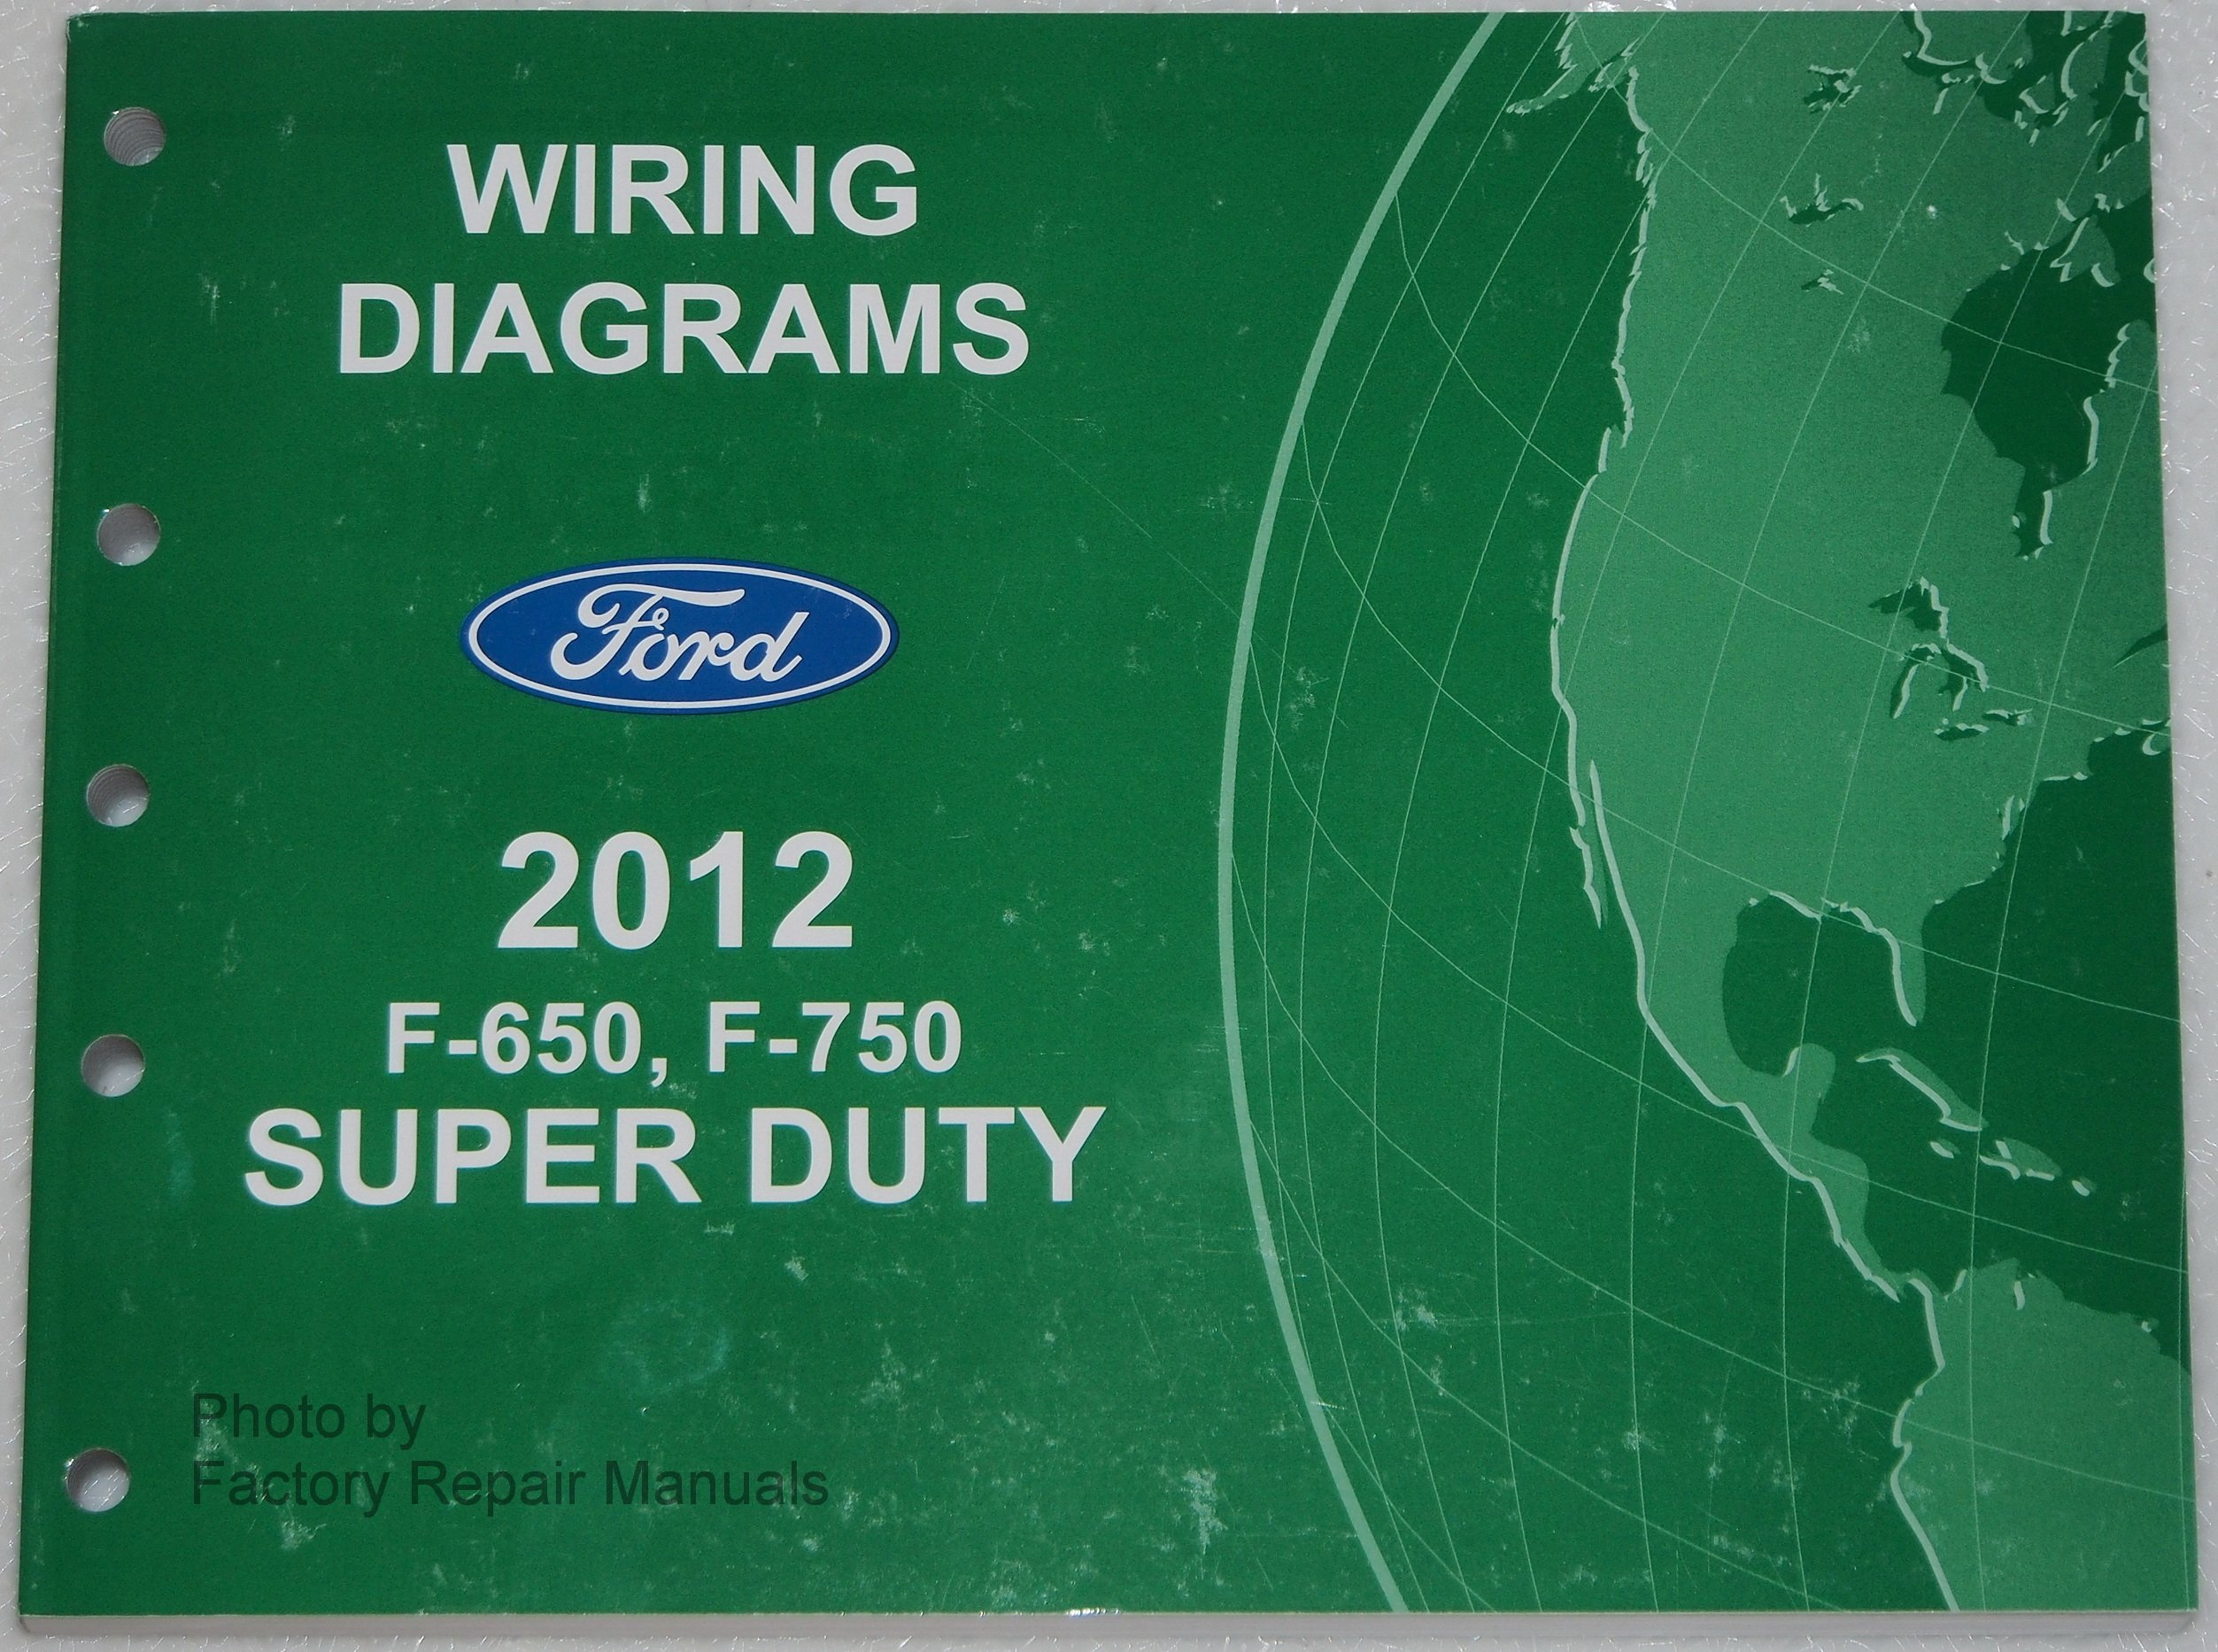 F750 Wiring Diagram Starting Know About 2006 Ford Fuse Box 2012 F650 Motor Company Amazon Com Books Rh